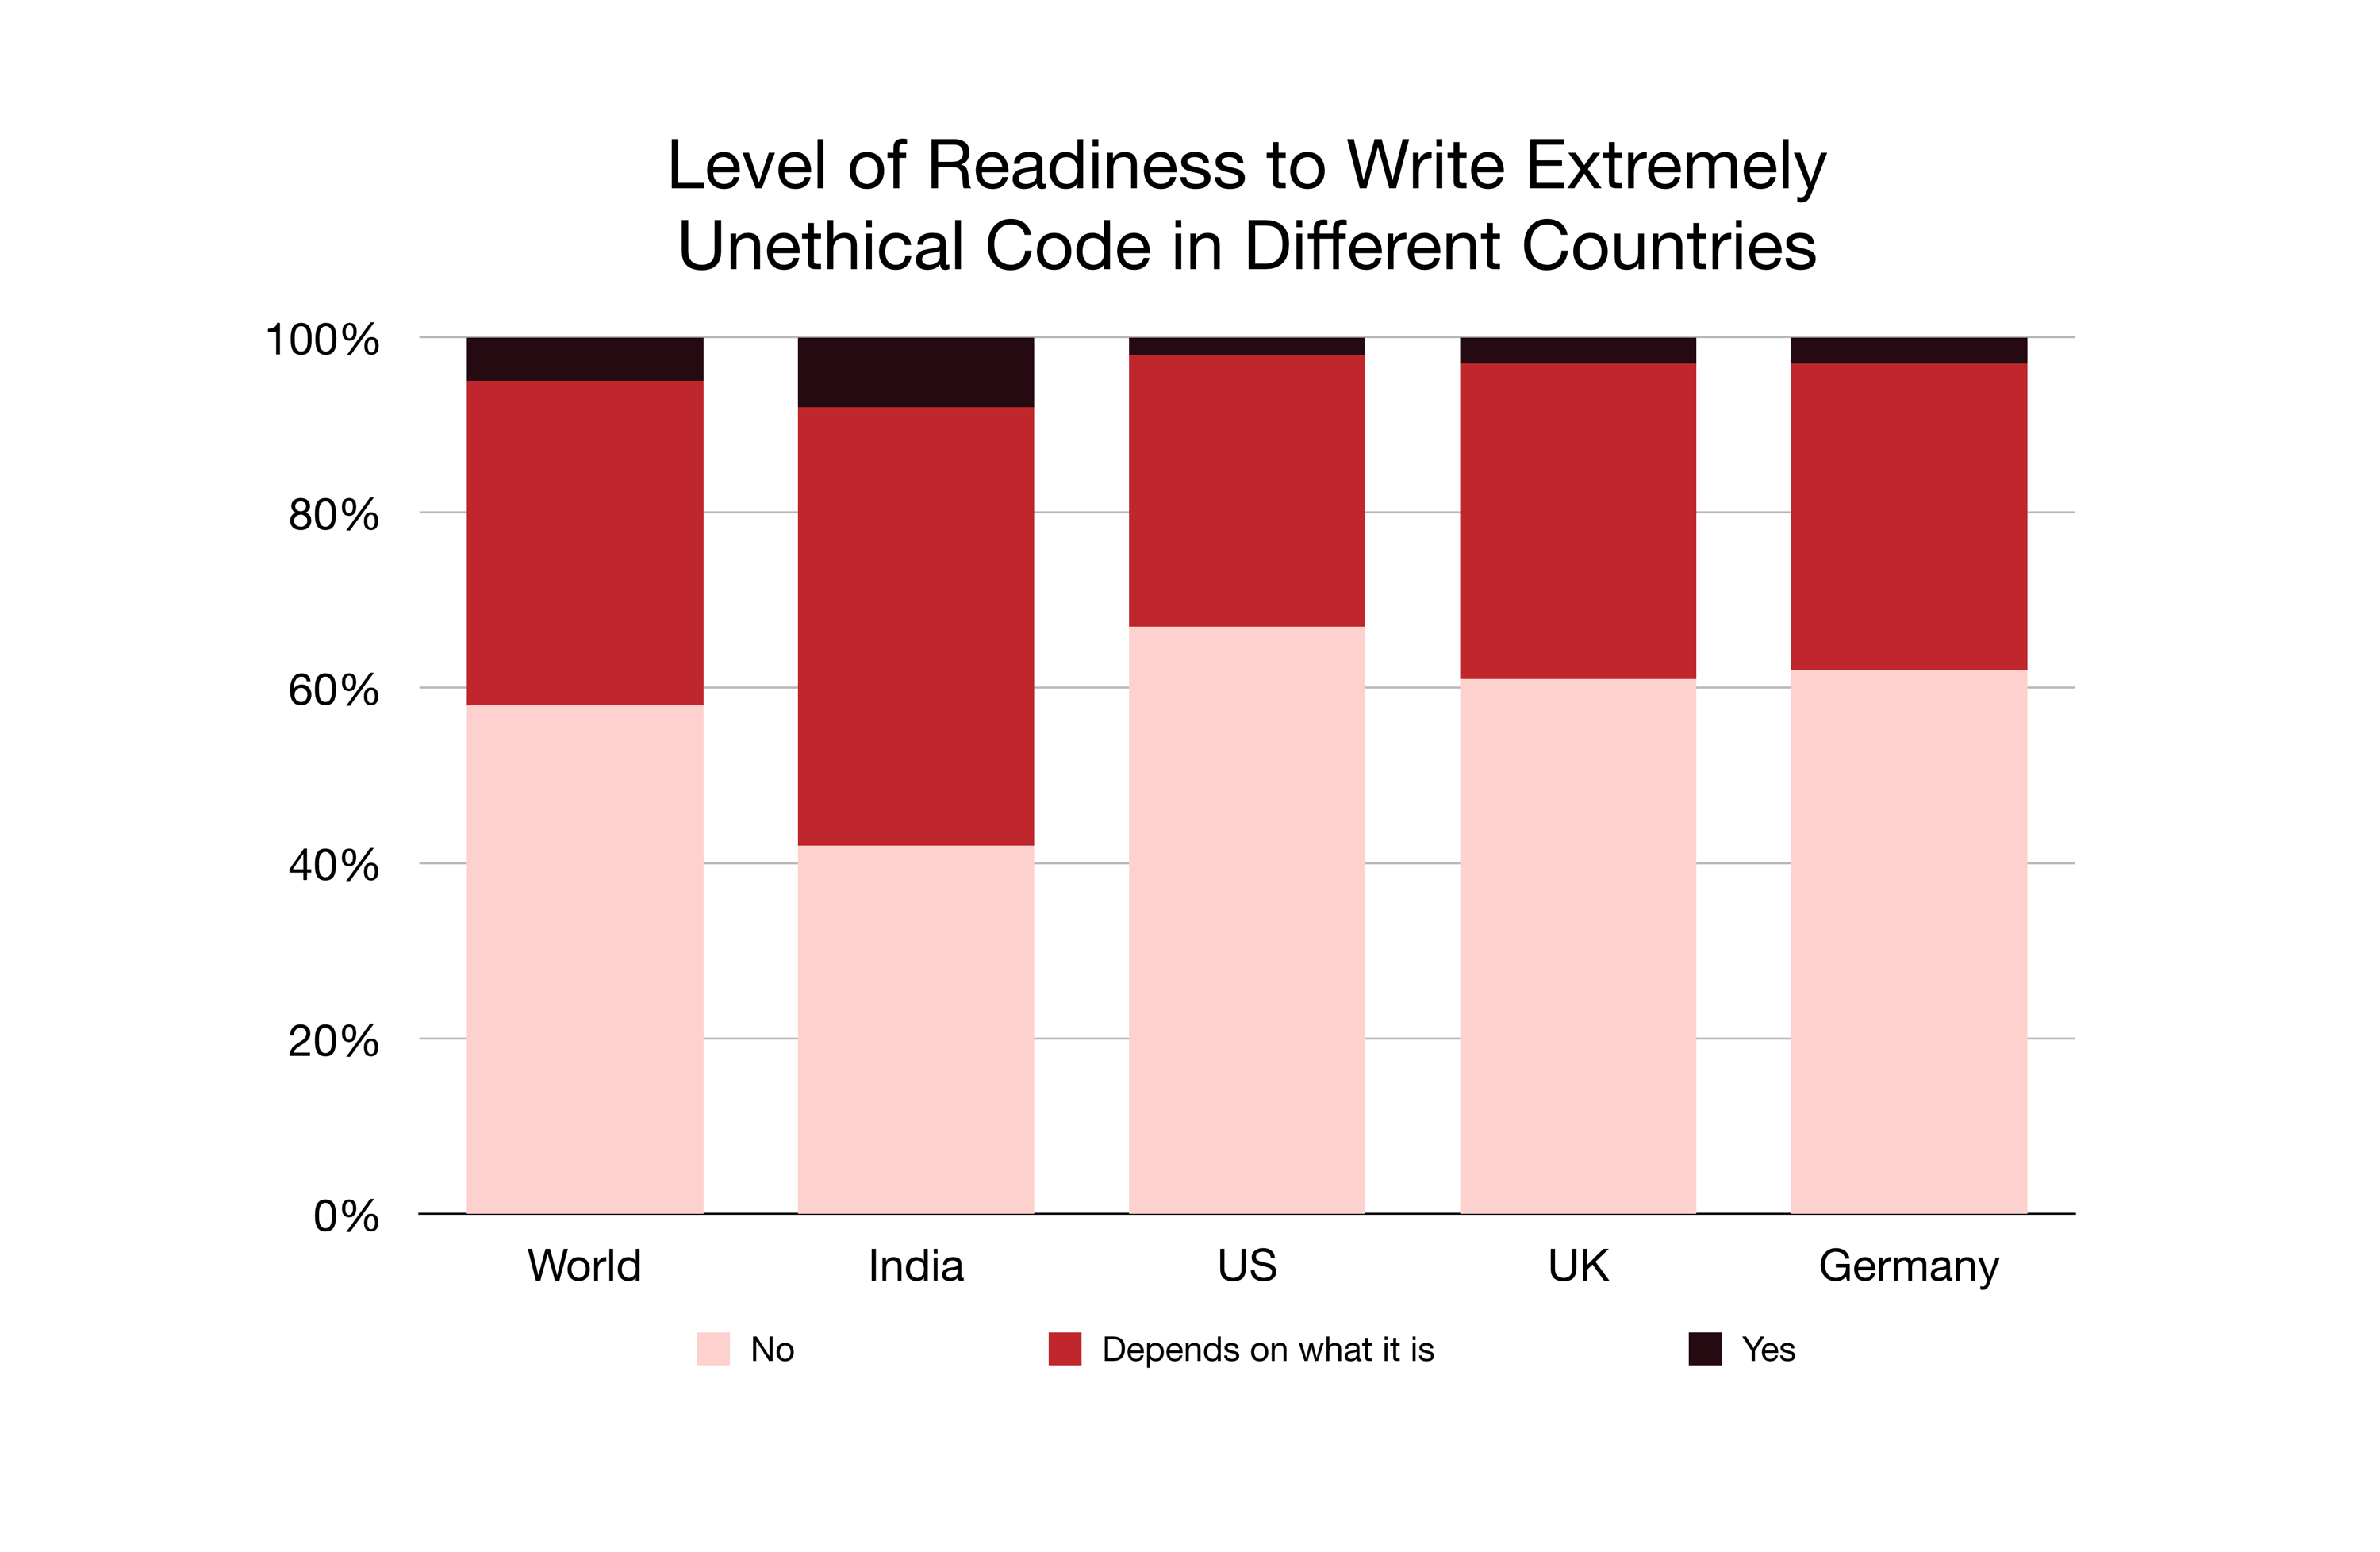 Level of Readiness to Write Extremely Unethical Code in Different Countries